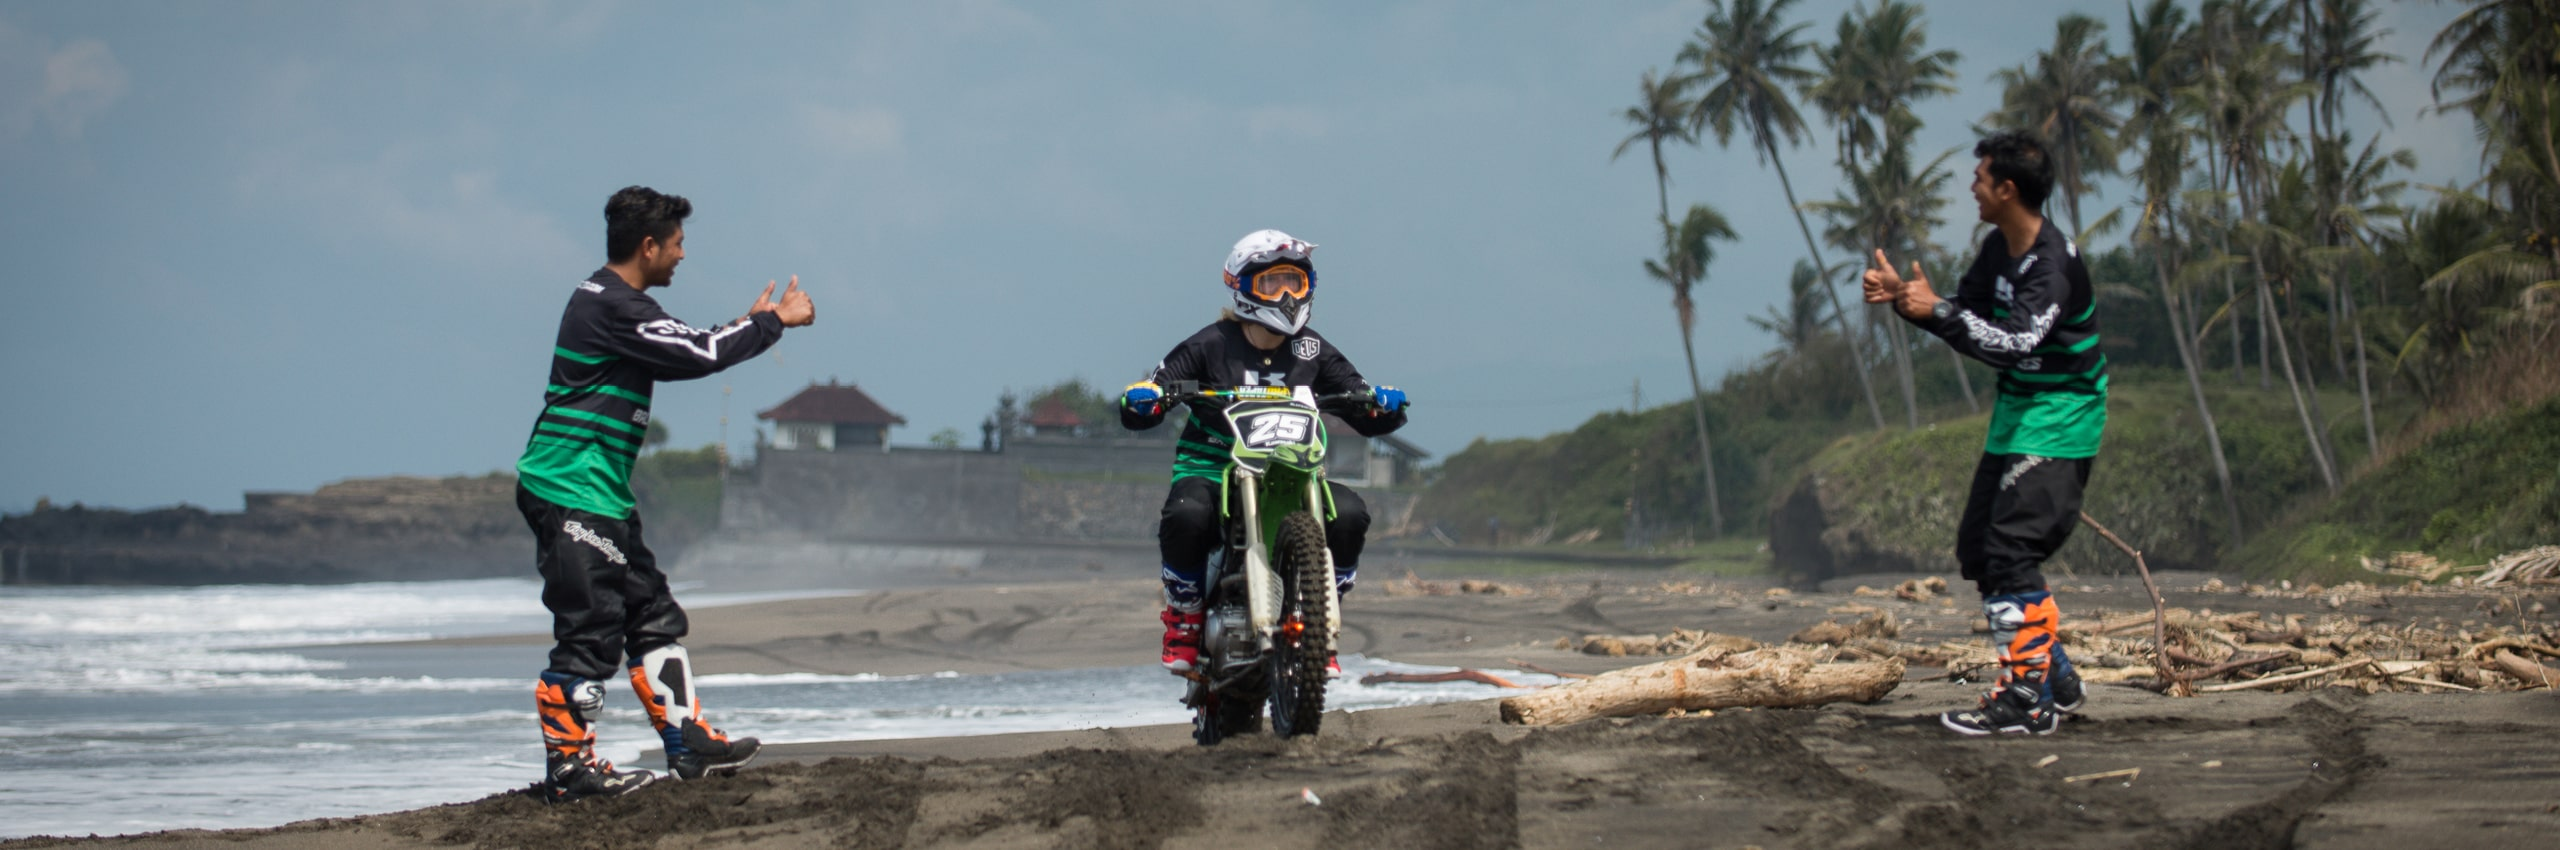 Bali_Dirt_Bikes_Learn_to_ride_Slider8